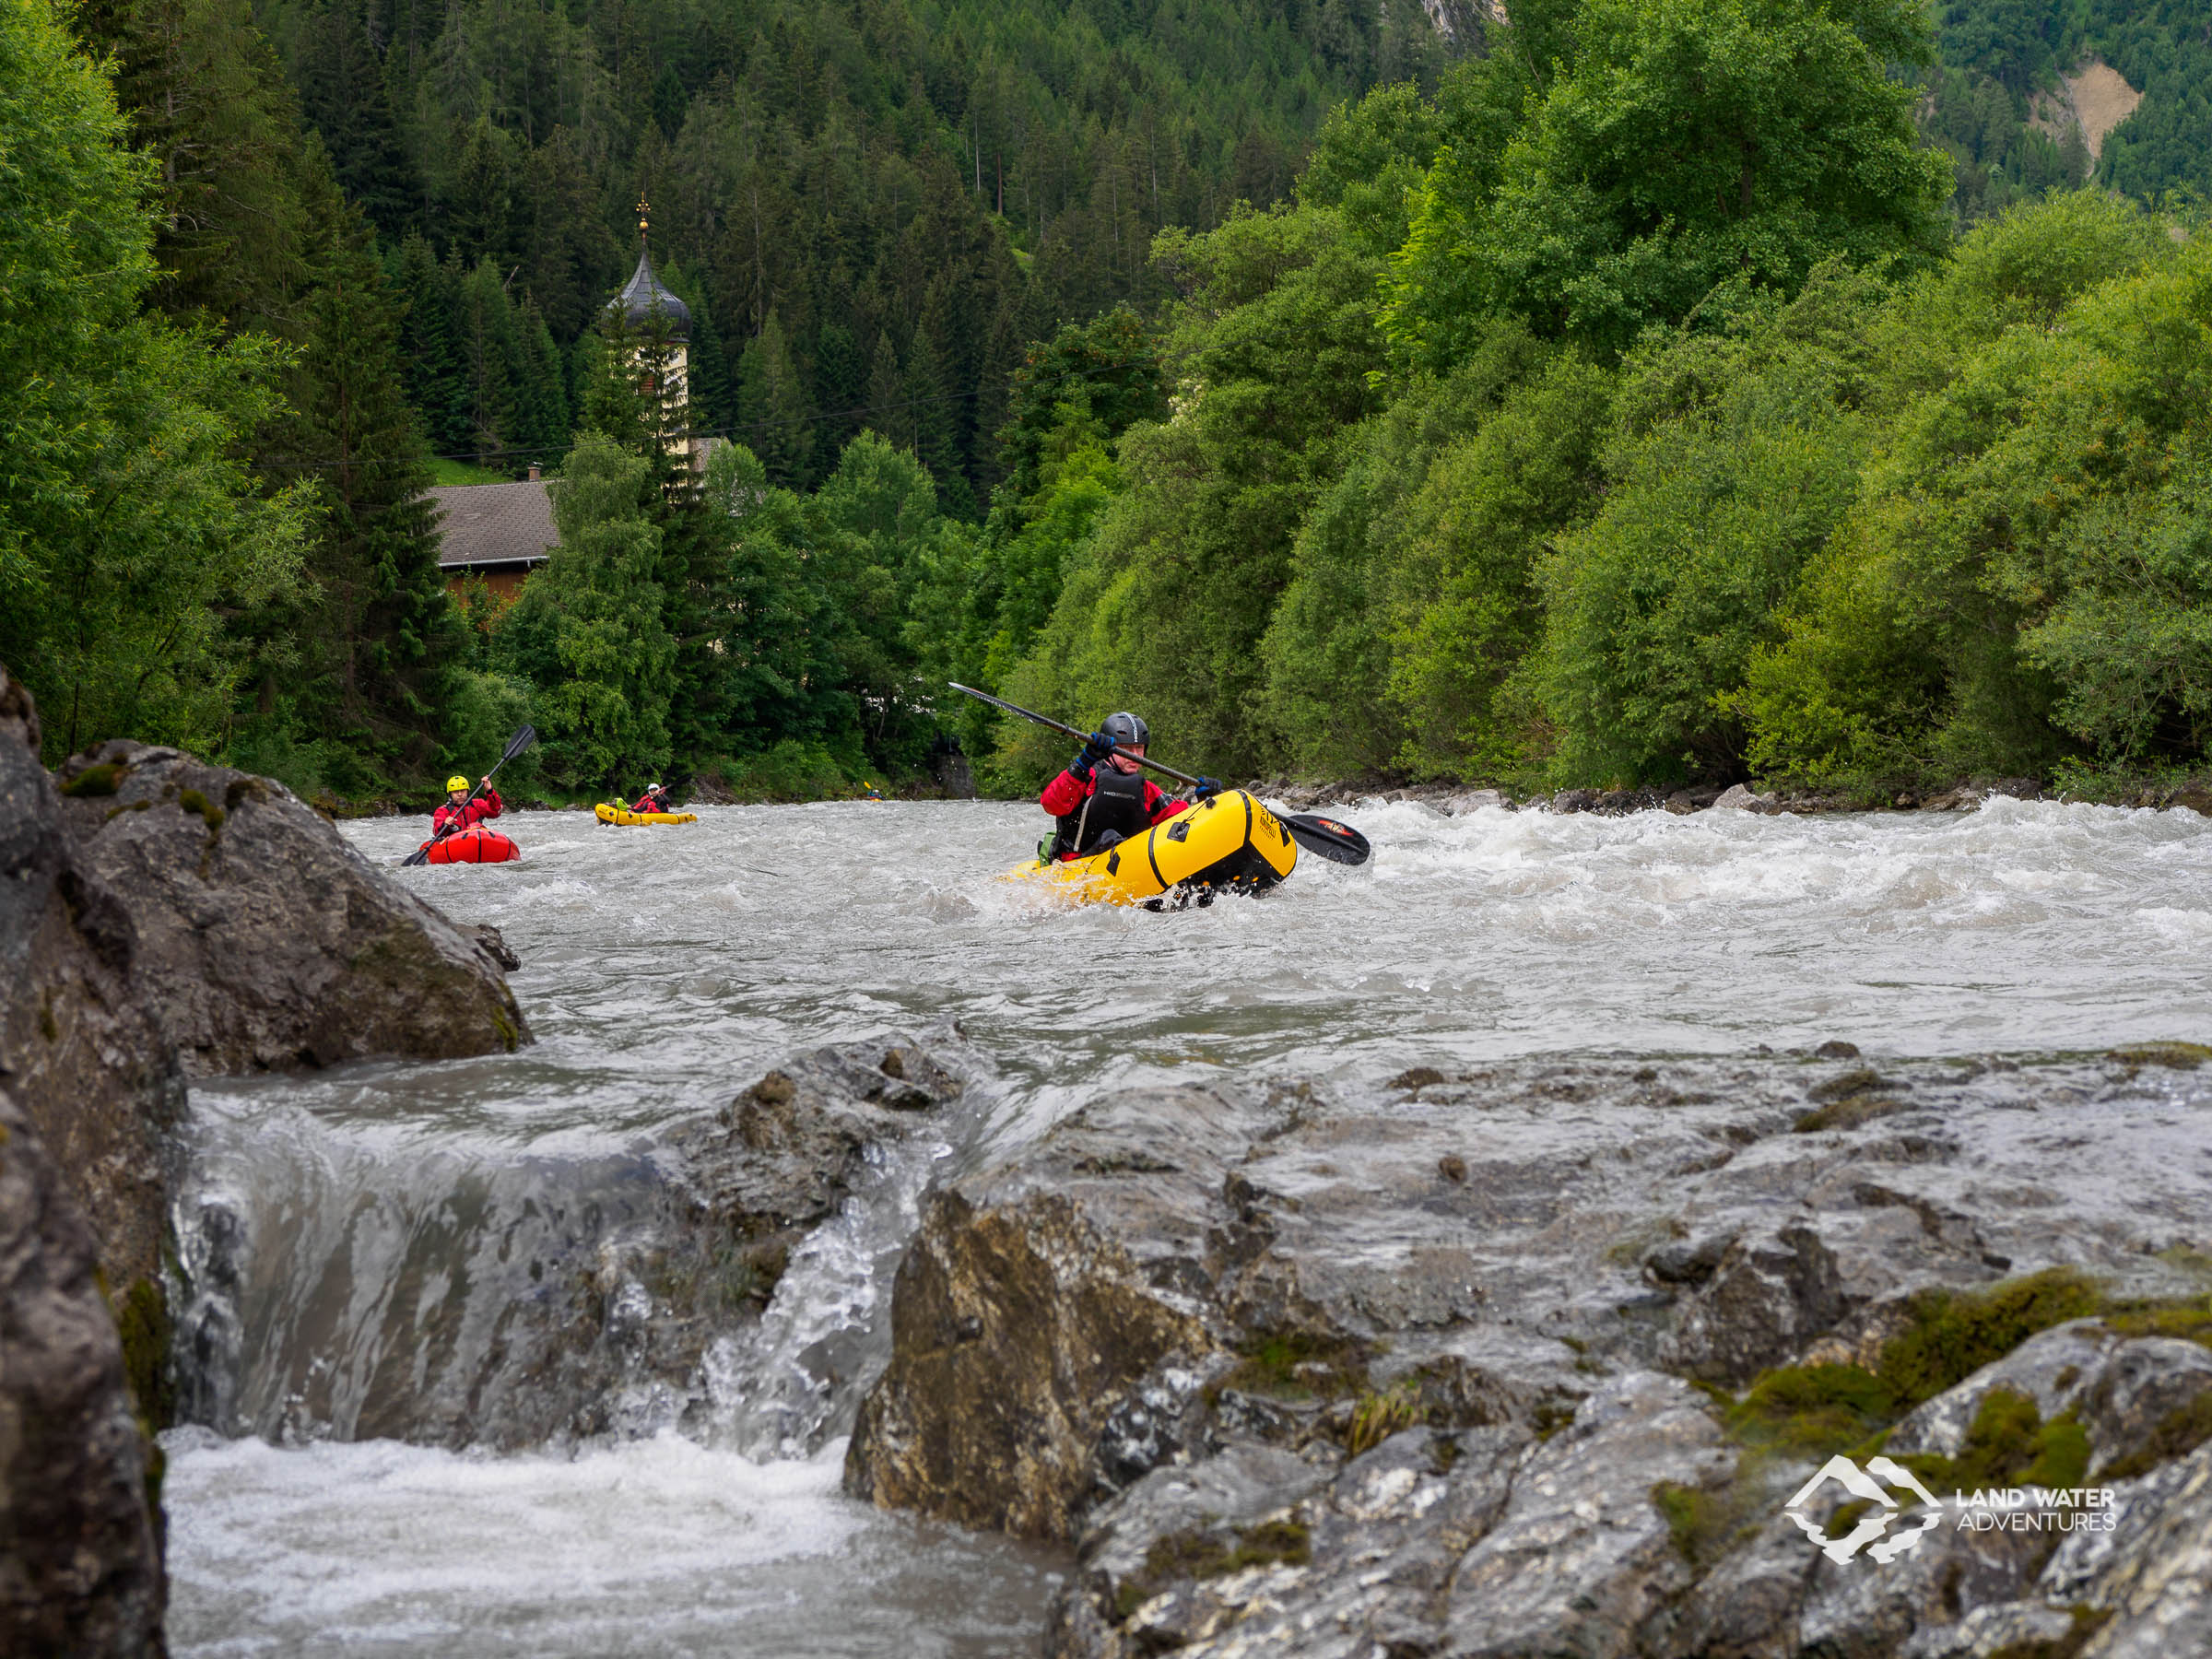 Whitewater Packrafting Course Tirol Lech © Land Water Adventures